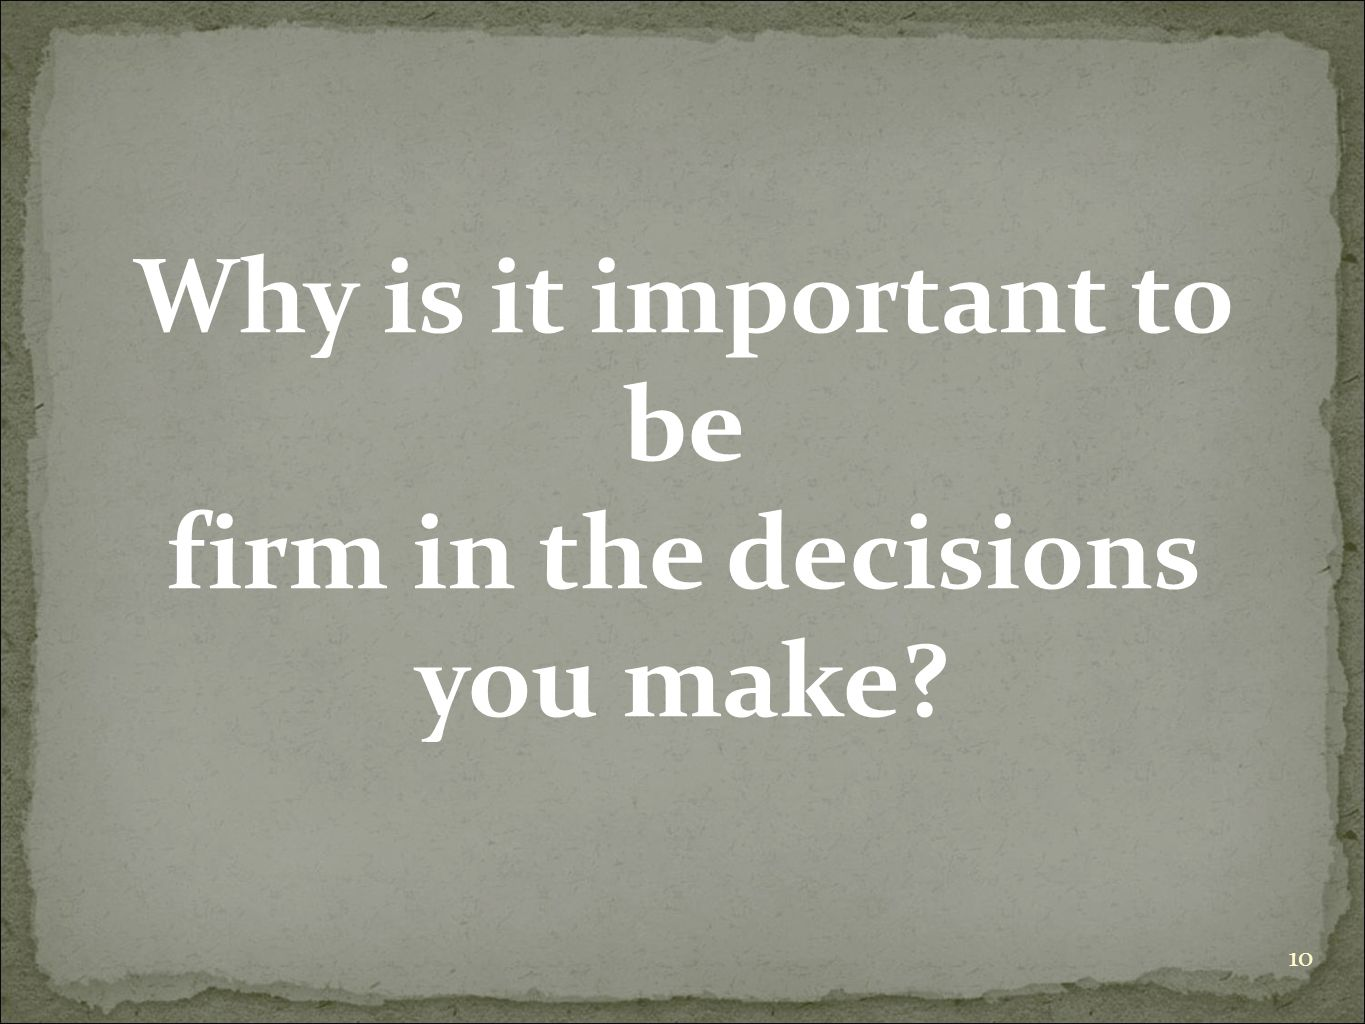 Why is it important to be firm in the decisions you make